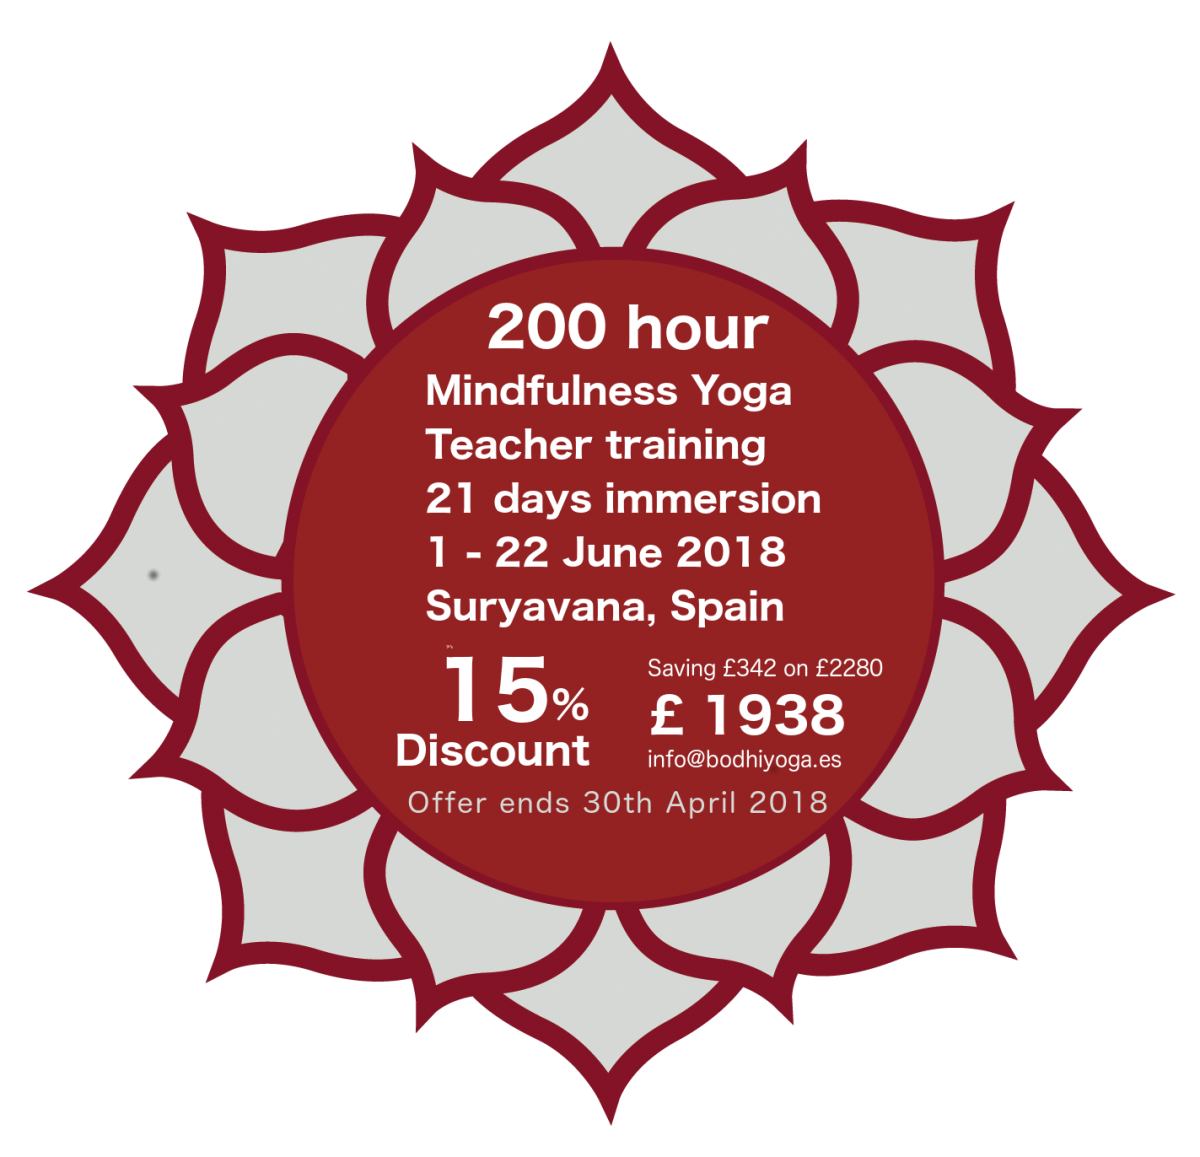 200-hour-Mindfulness-Yoga-Teacher-training-21-days-immersion-1-22-June-2018-Spain